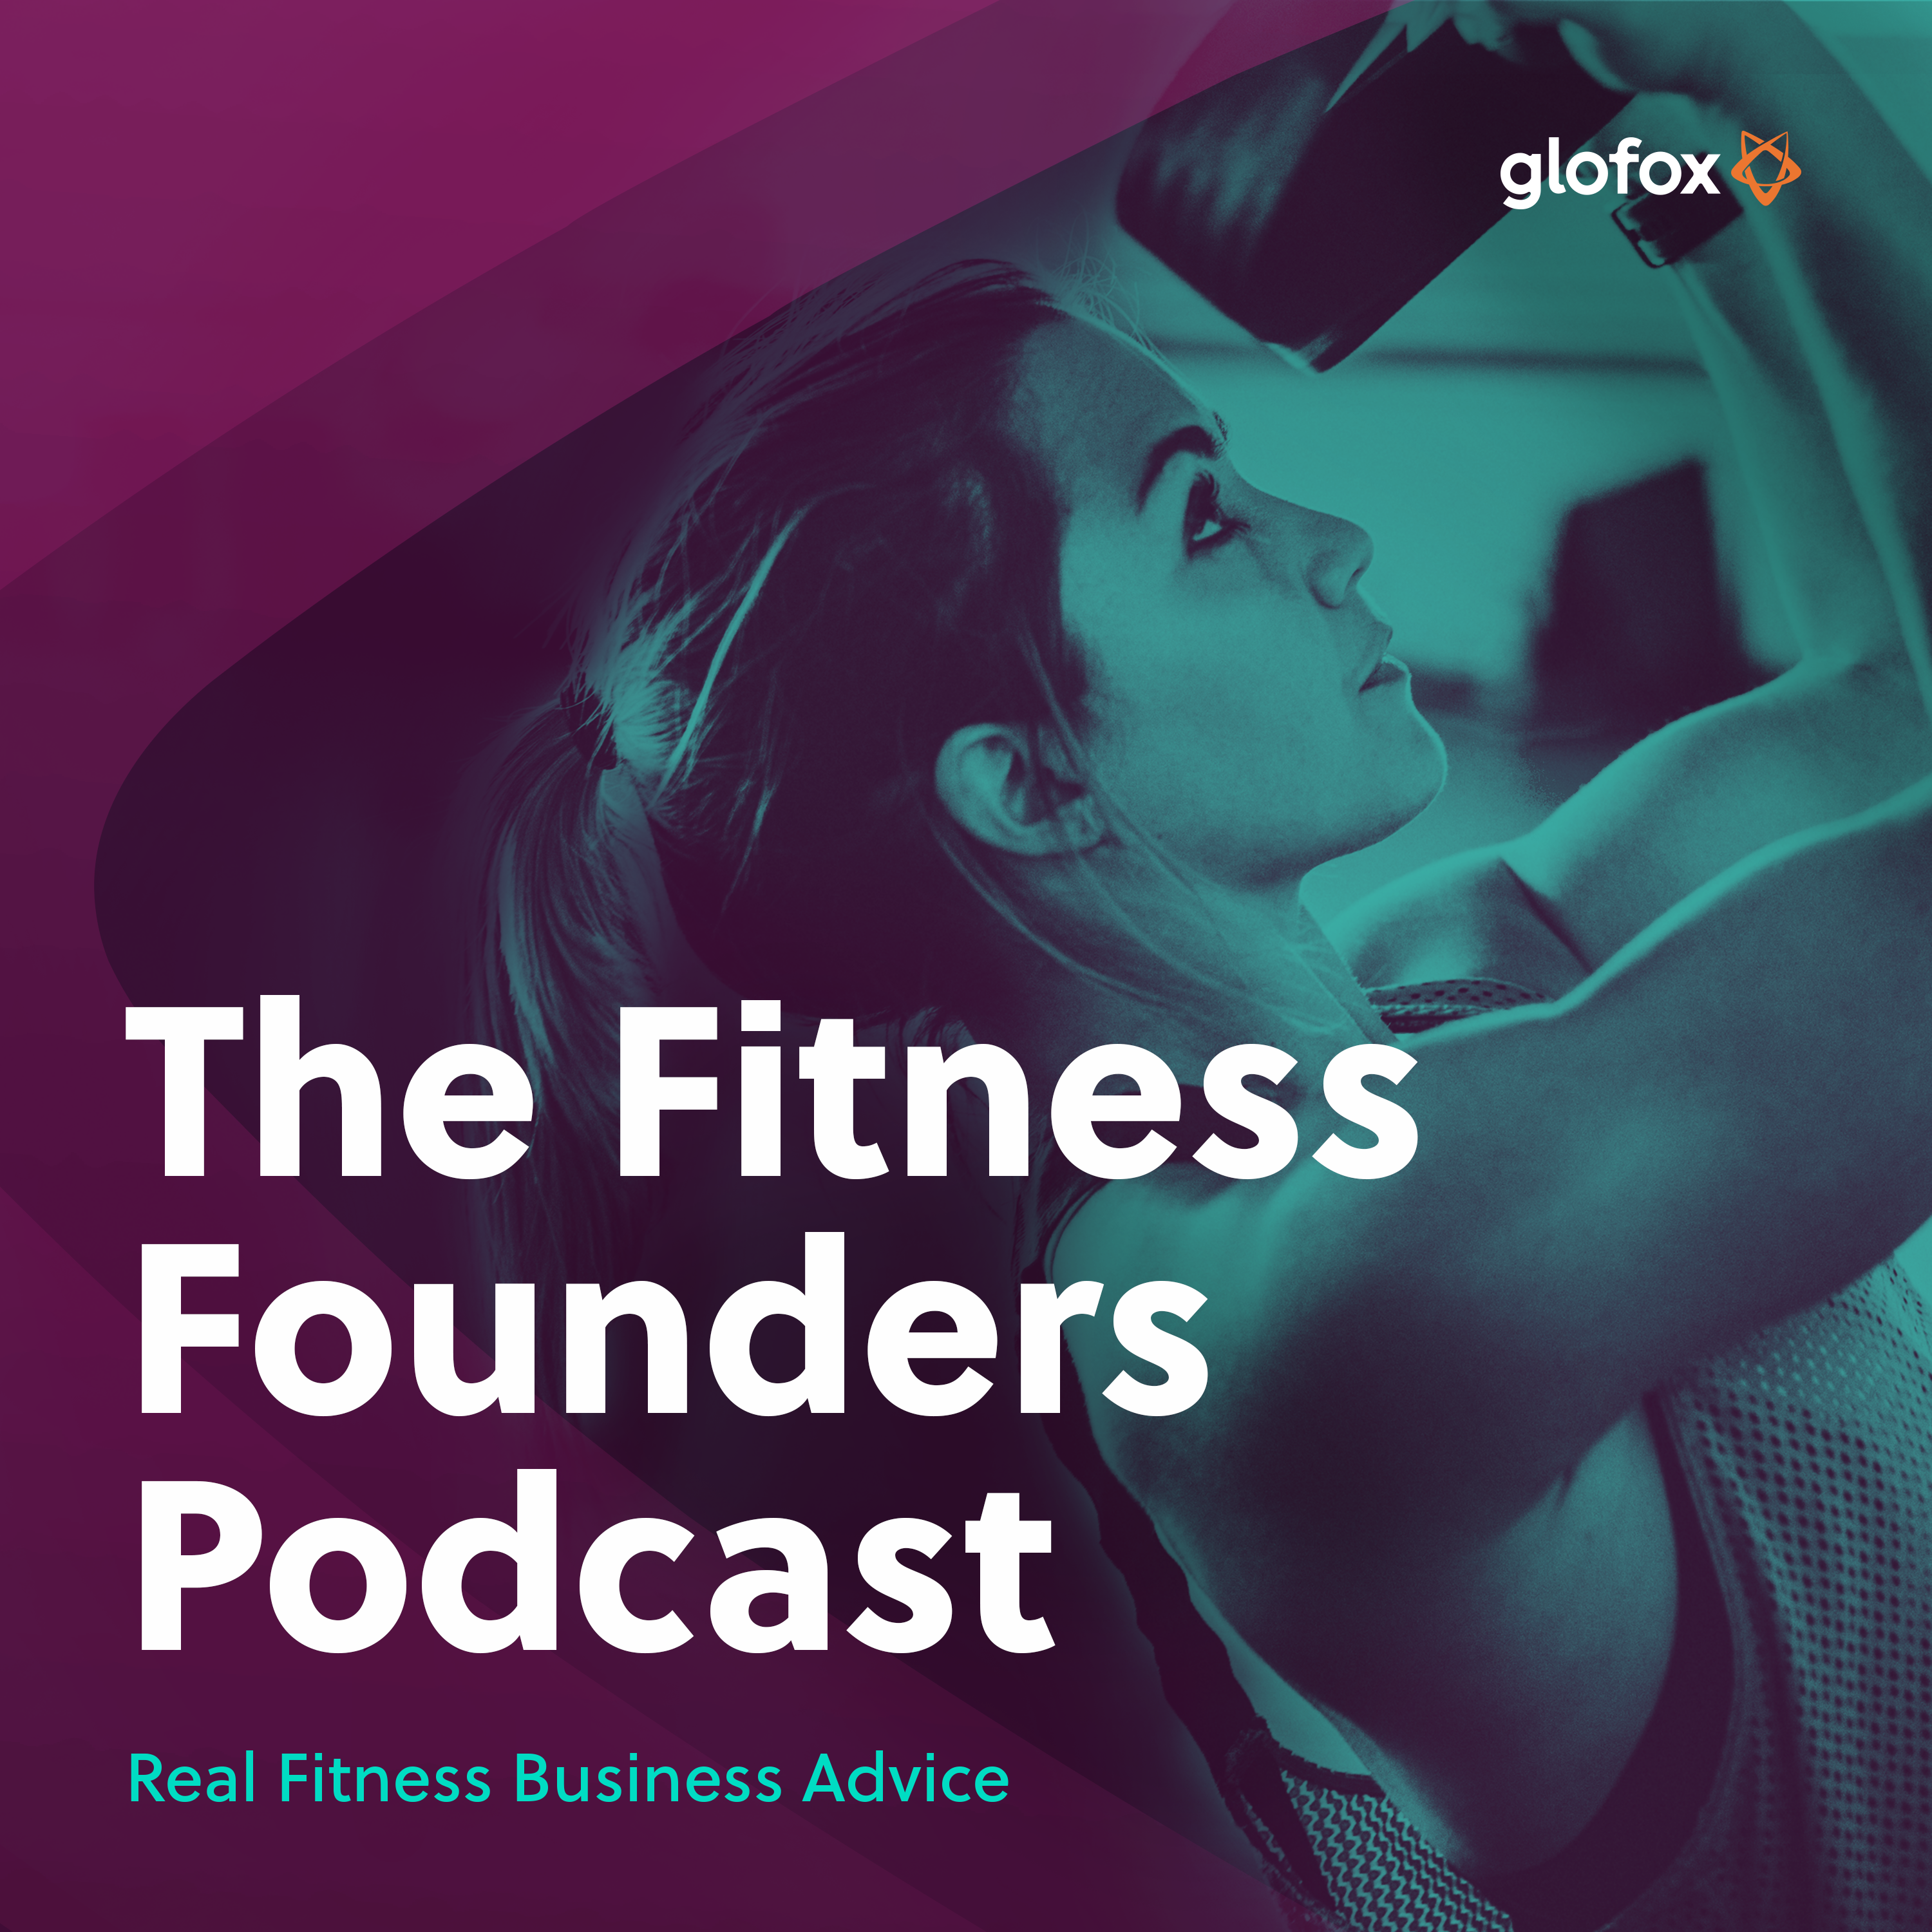 The Fitness Founders Podcast show art